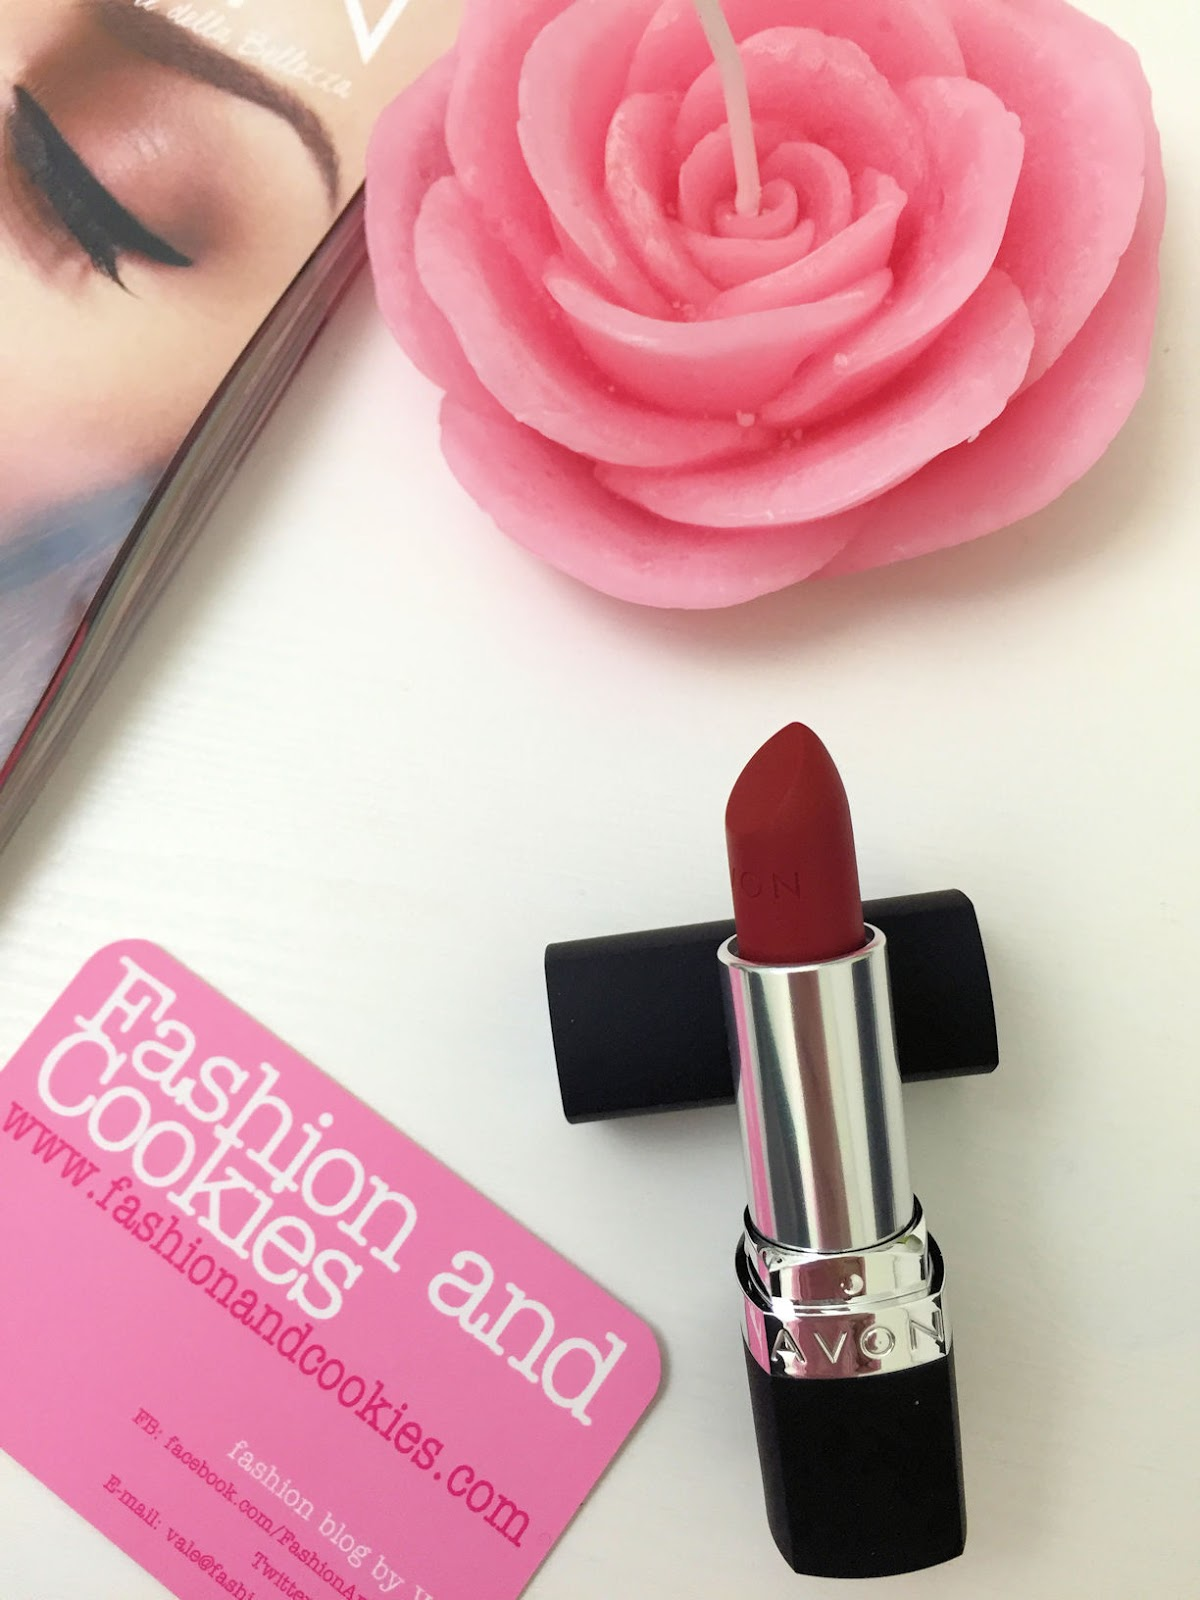 Avon Perfectly Matte Lipstick Red Supreme on Fashion and Cookies beauty blog, beauty blogger